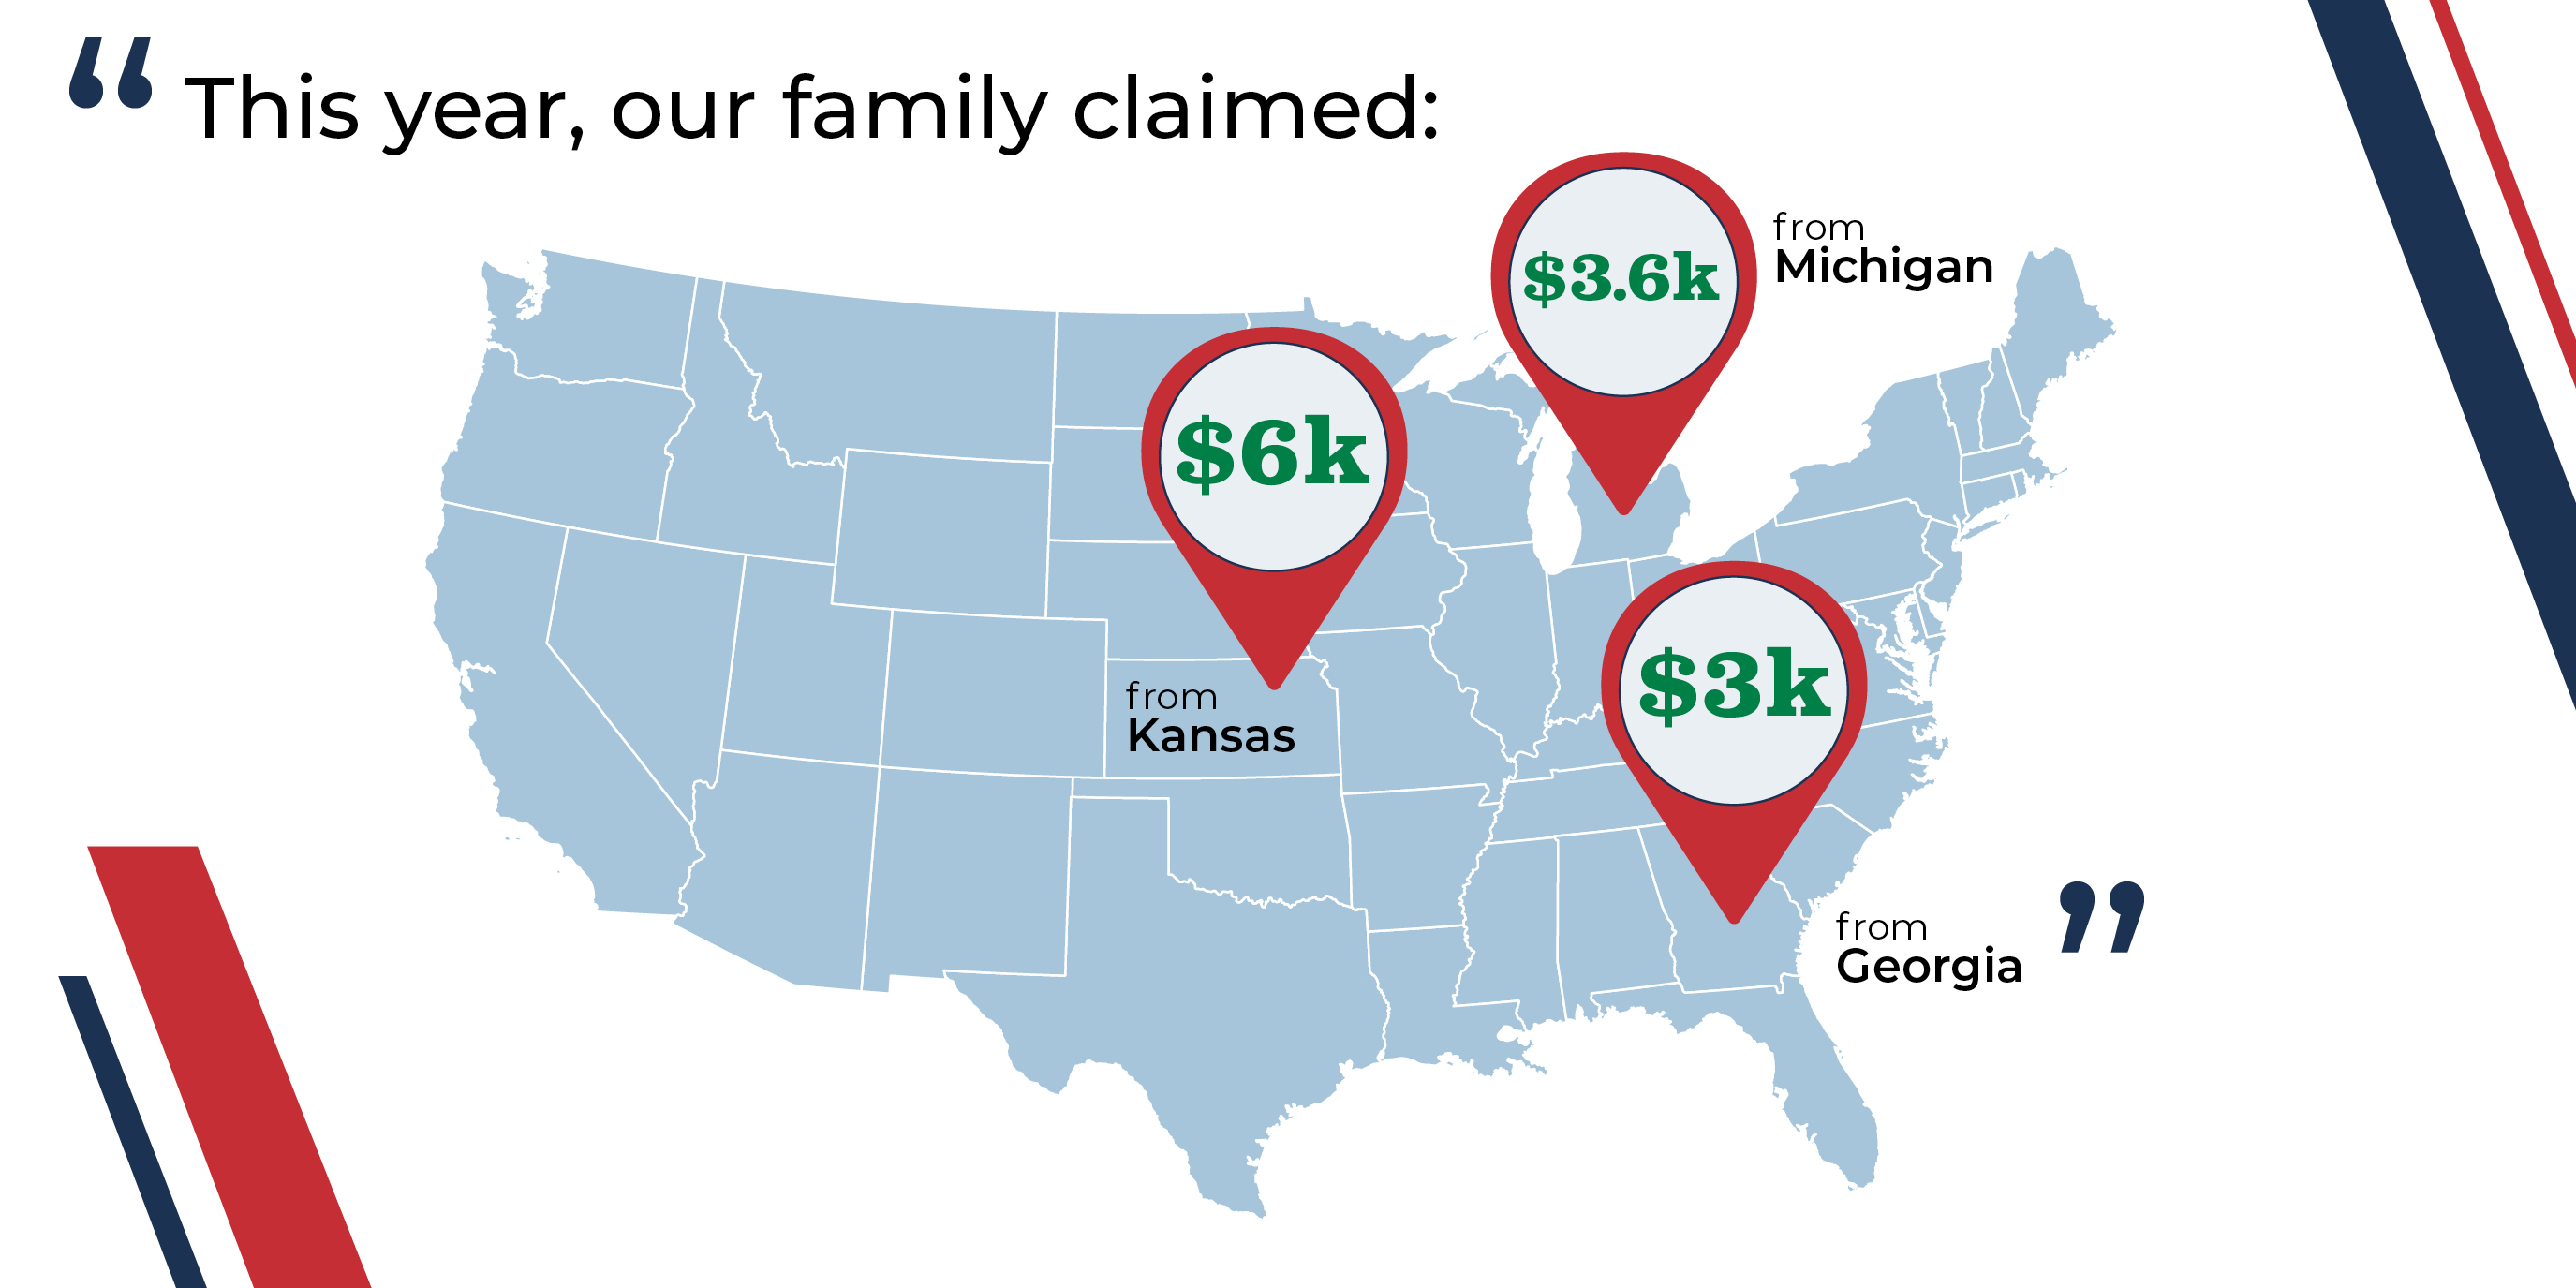 MissingMoney.com is Putting Money in the Pockets of Americans!